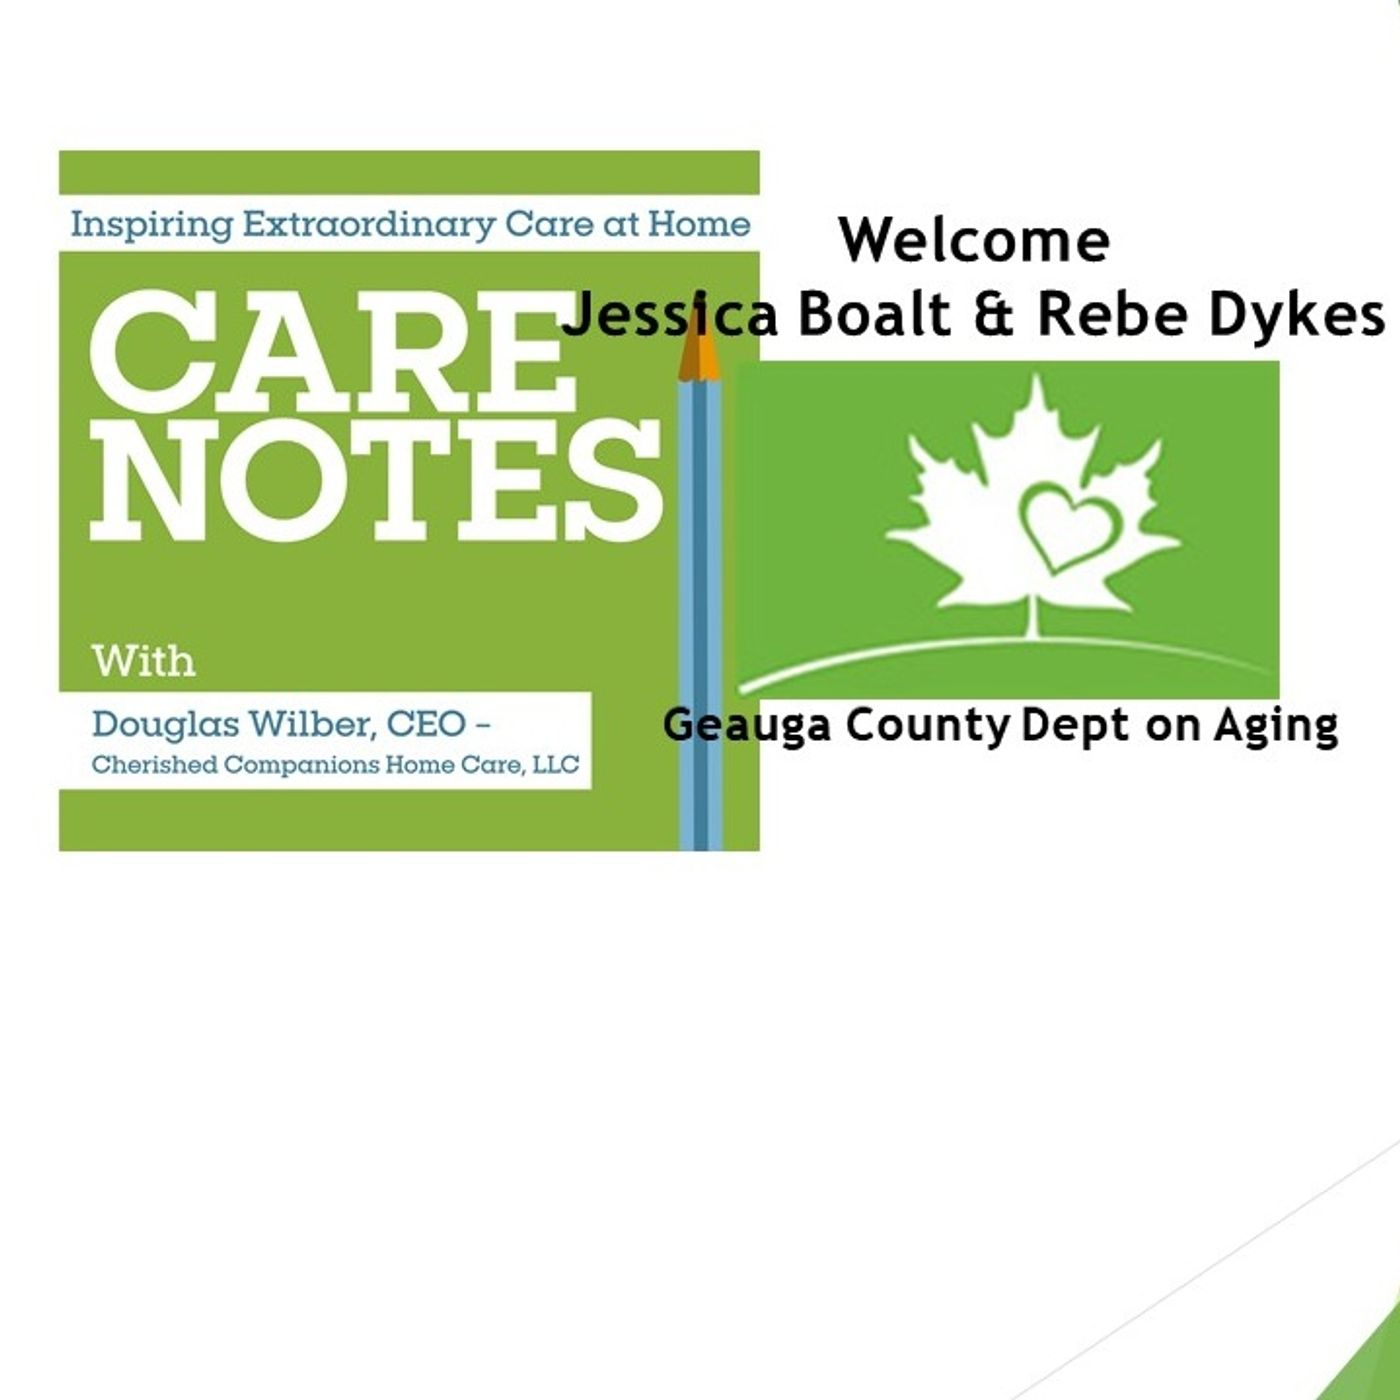 7care-notes__dept-of-aging 9_18_18